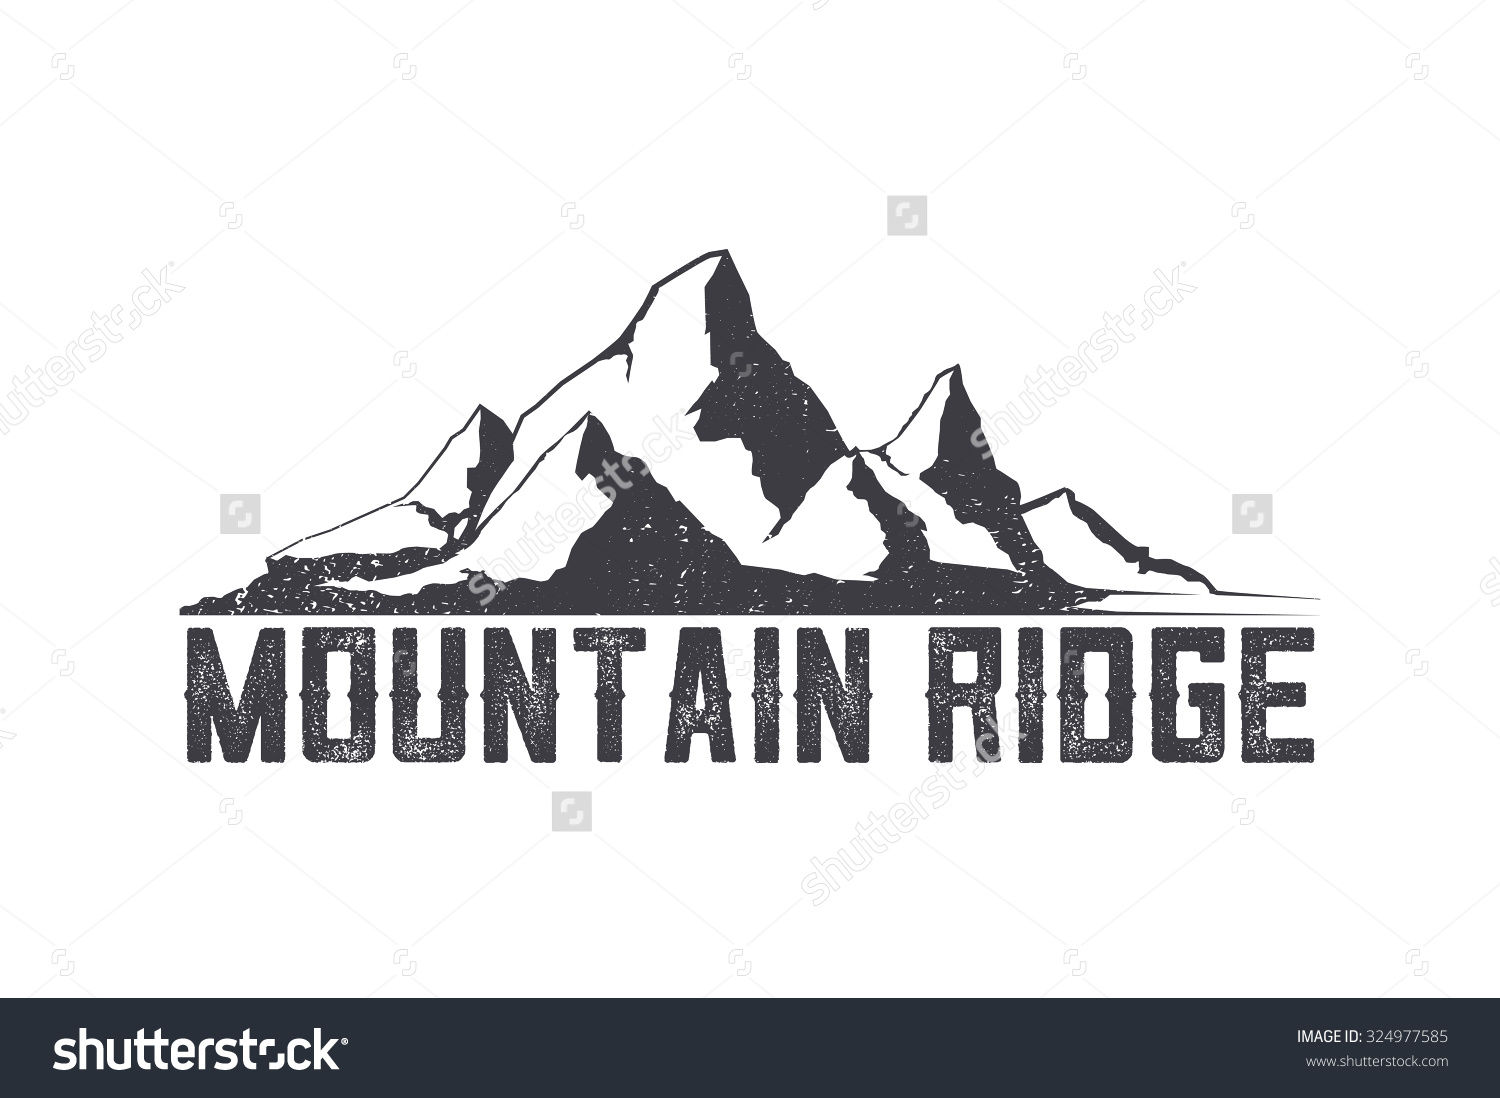 Mountain Ridge clipart outdoors Clipart drawings Ridge Mountain Mountain